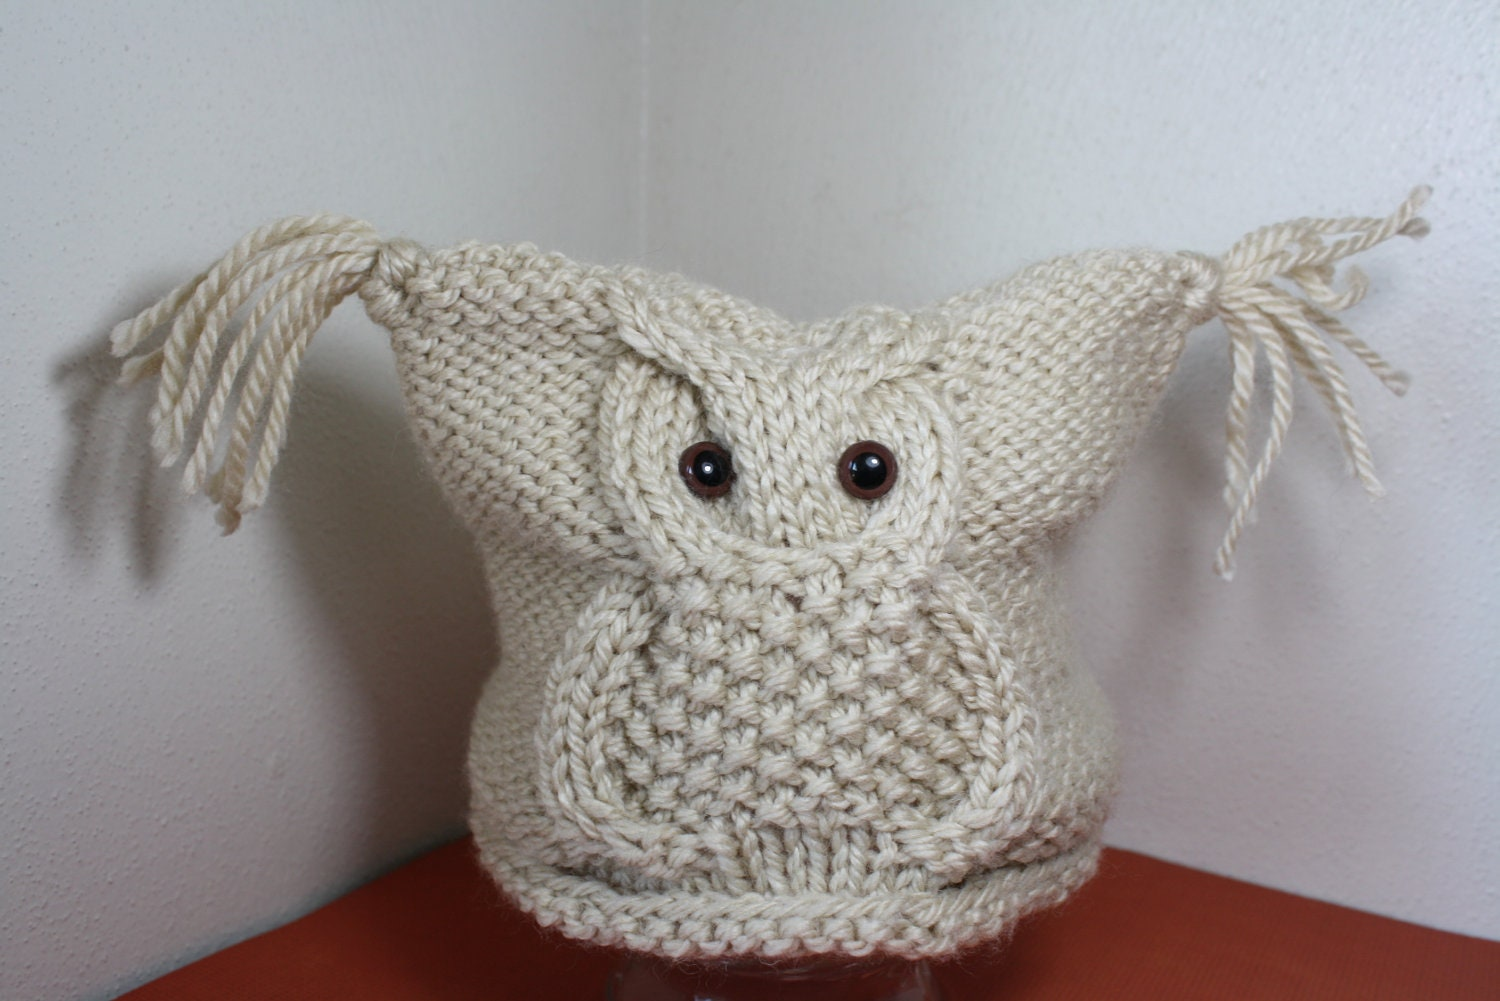 Free Knitting Patterns For Baby Owl Hats : Knit Owl Hat Pattern Free Search Results Calendar 2015